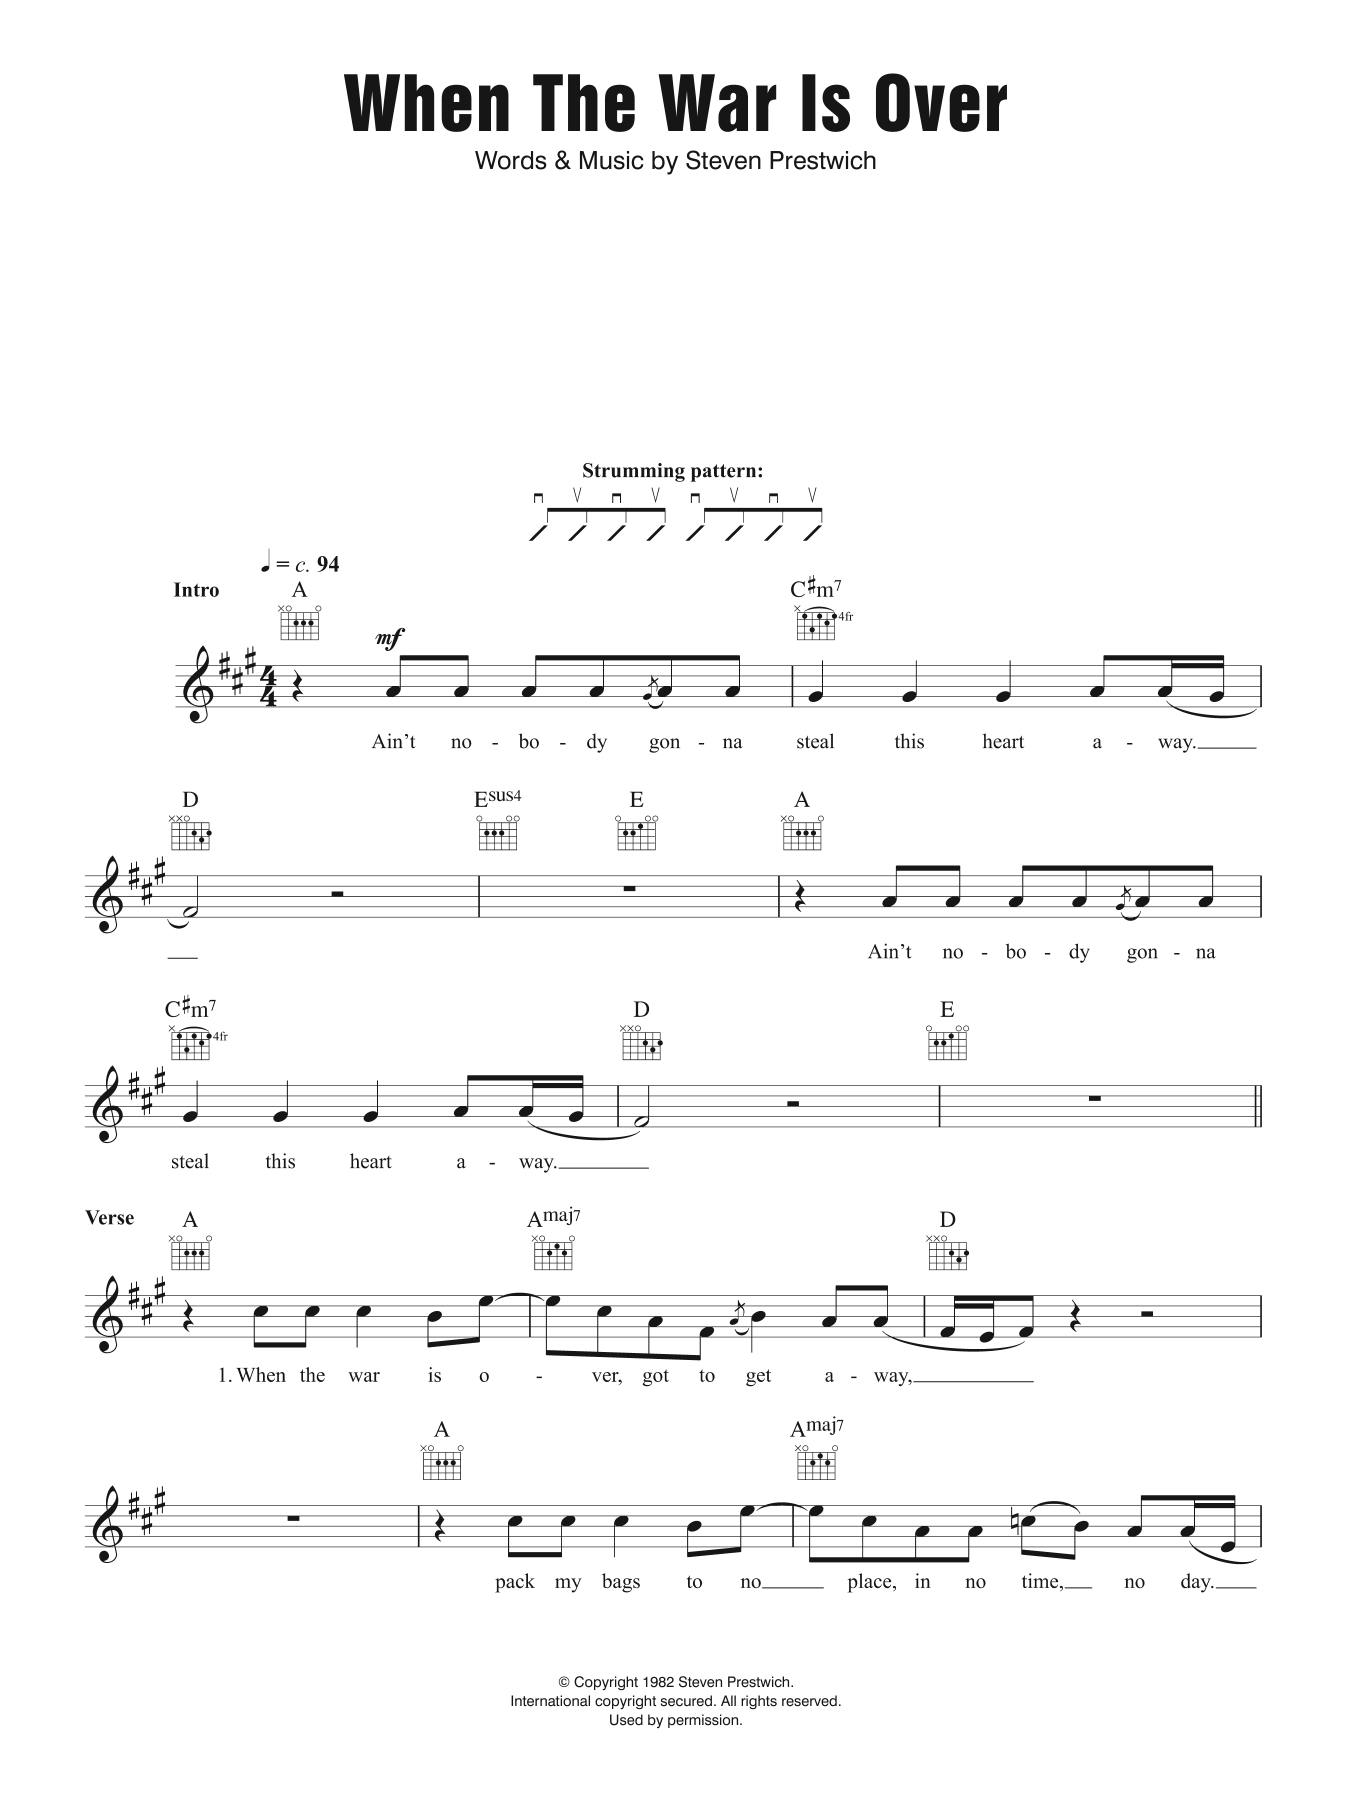 When The War Is Over Sheet Music